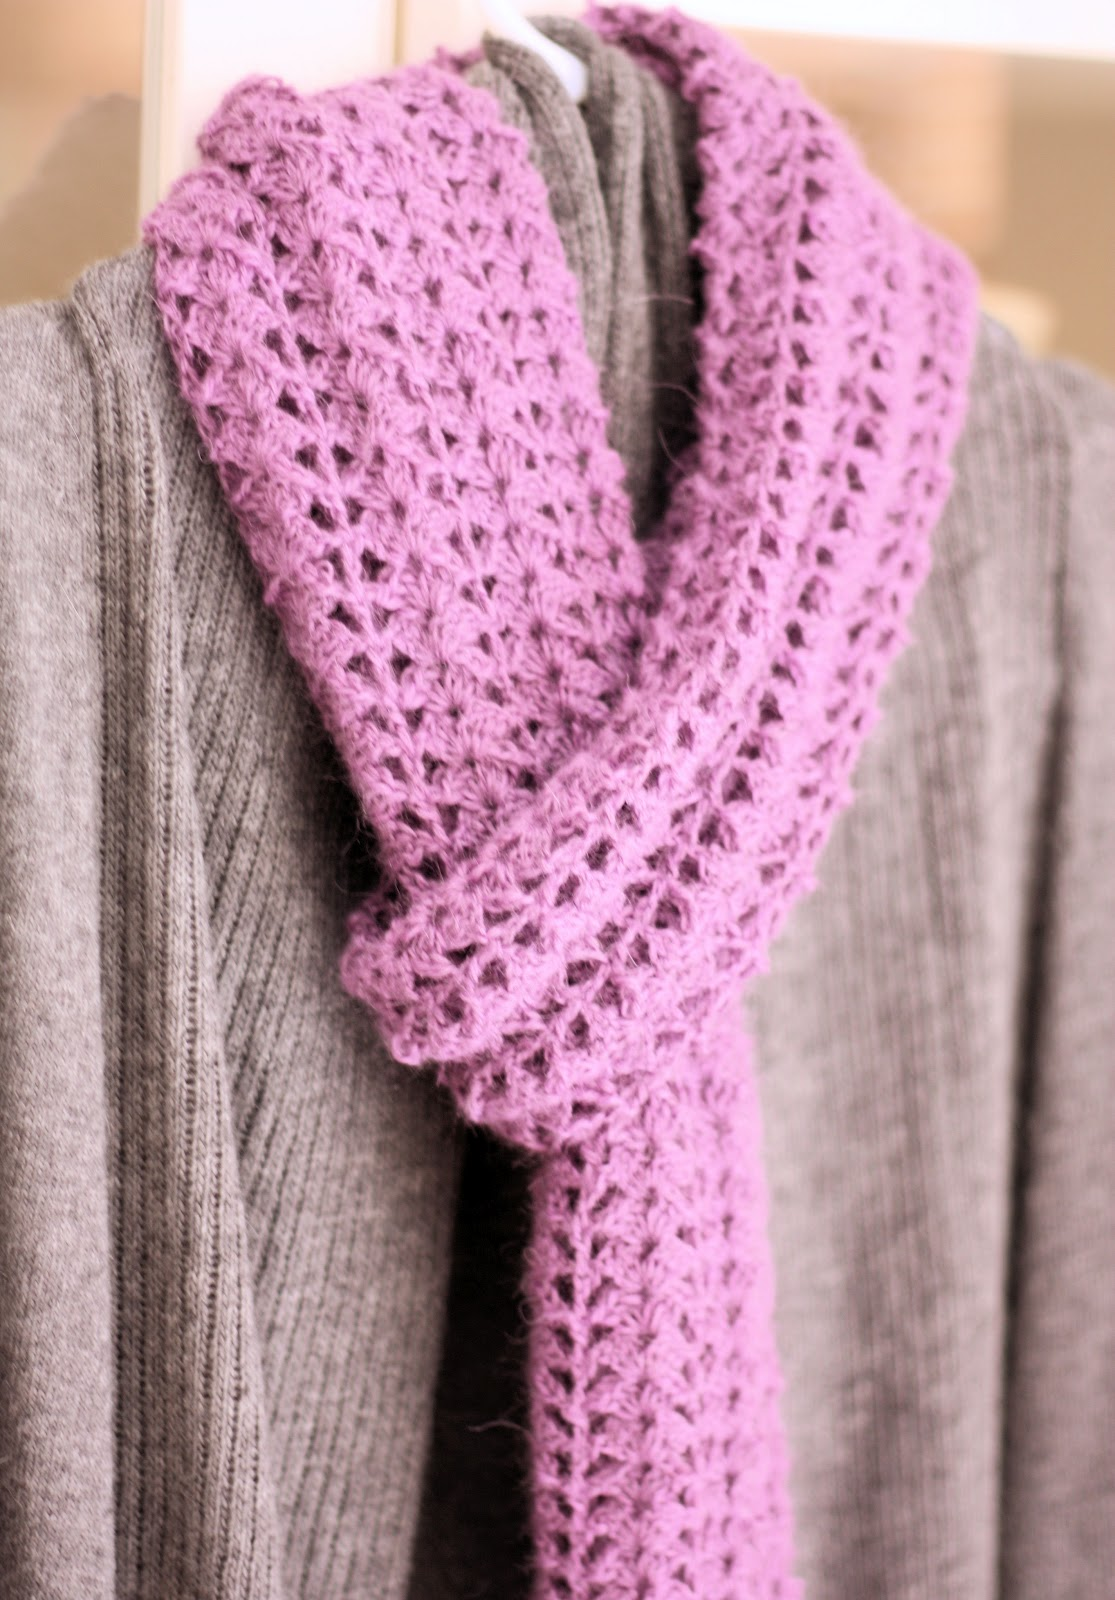 Crochet Scarf Pattern With Pictures : Crocheted Scarf {Free Pattern} - A Spoonful of Sugar